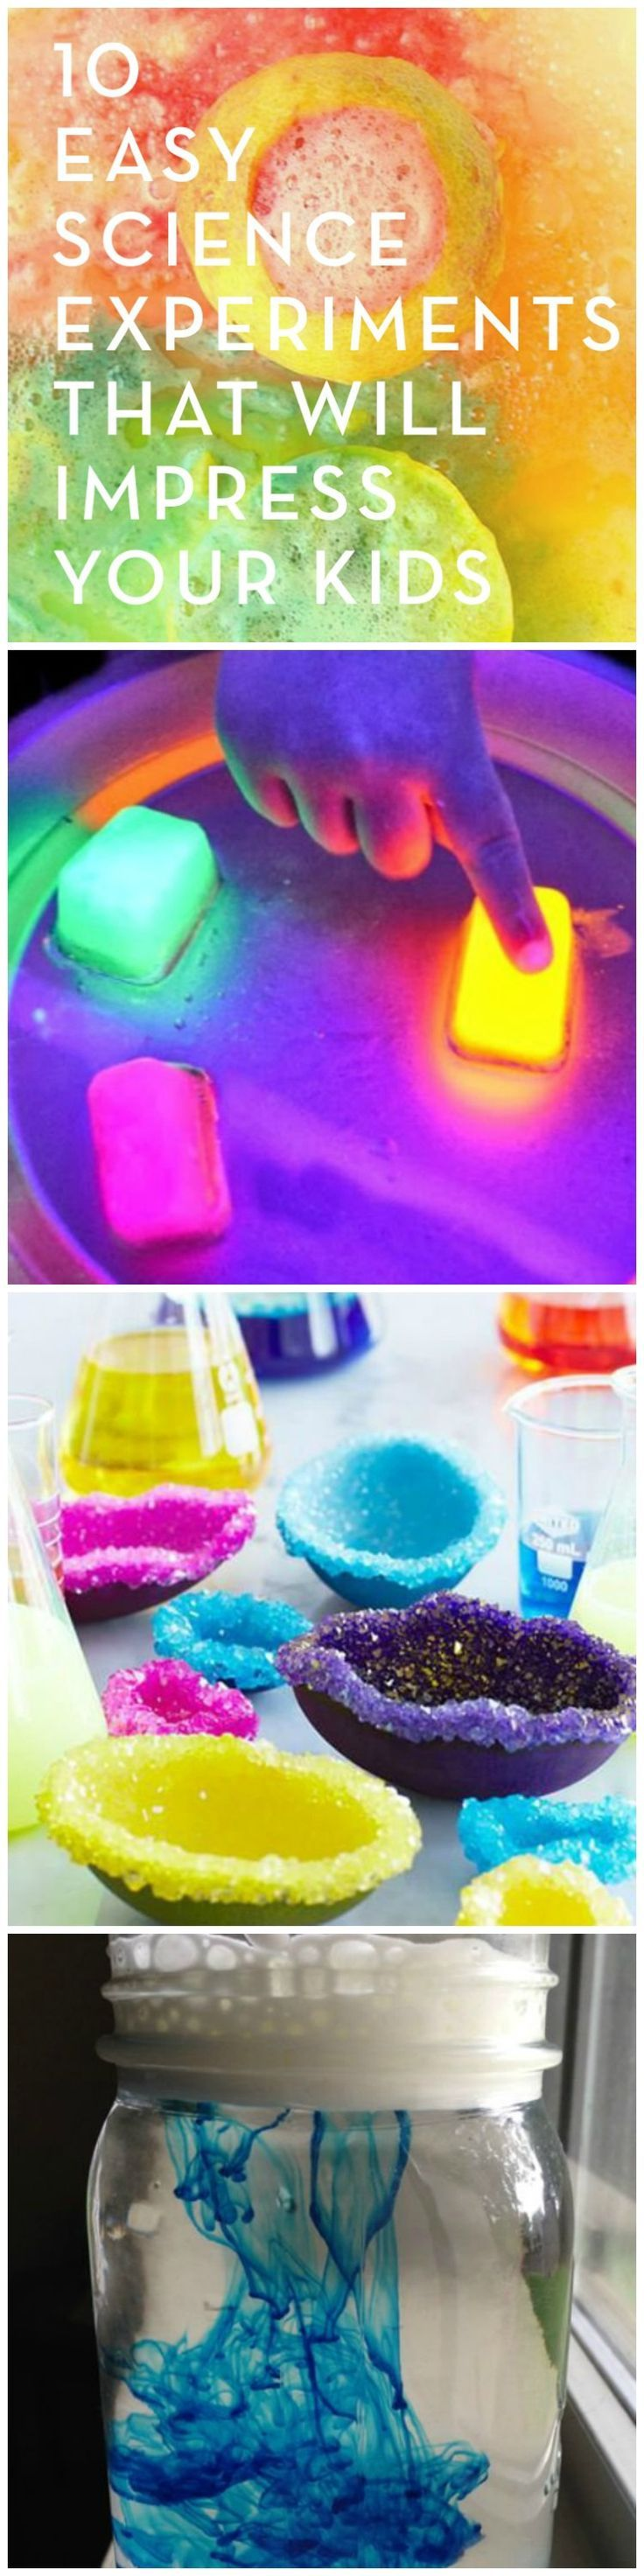 10 Super Easy Science Experiments That Will Impress Your Kids